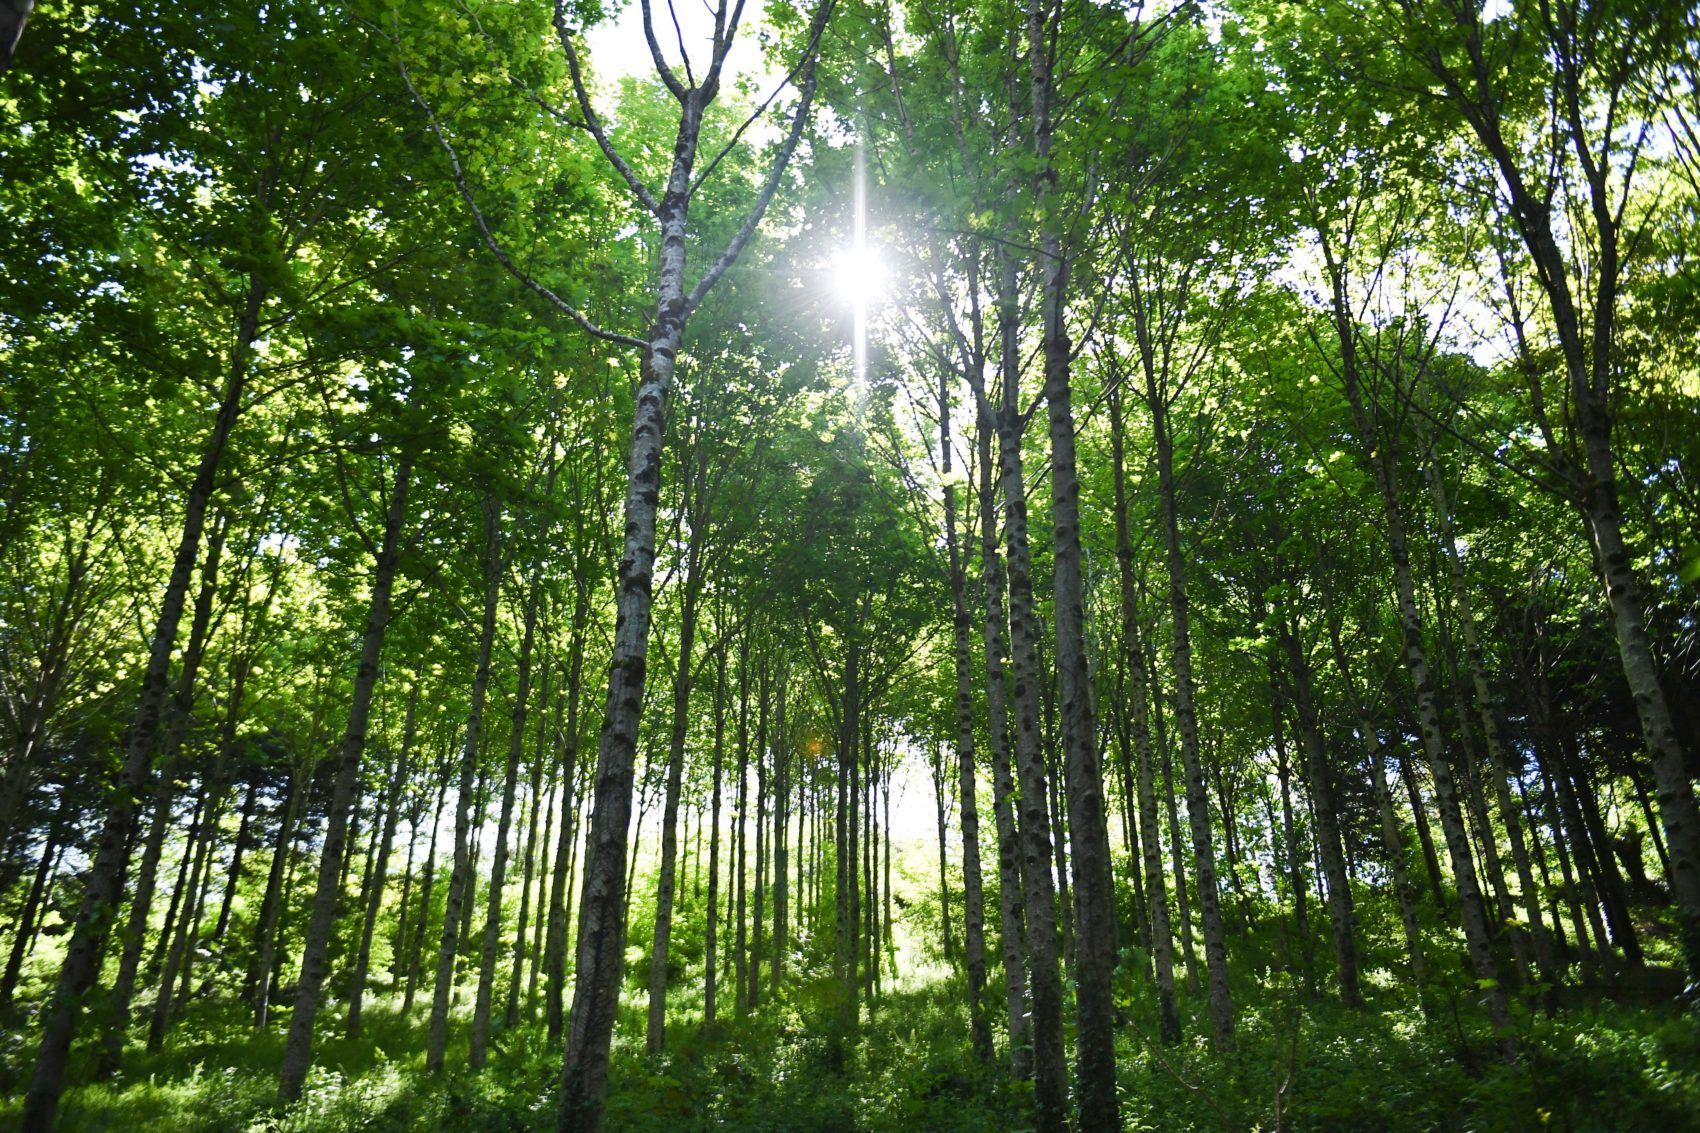 Young trees or old trees-which is more important for slowing climate change